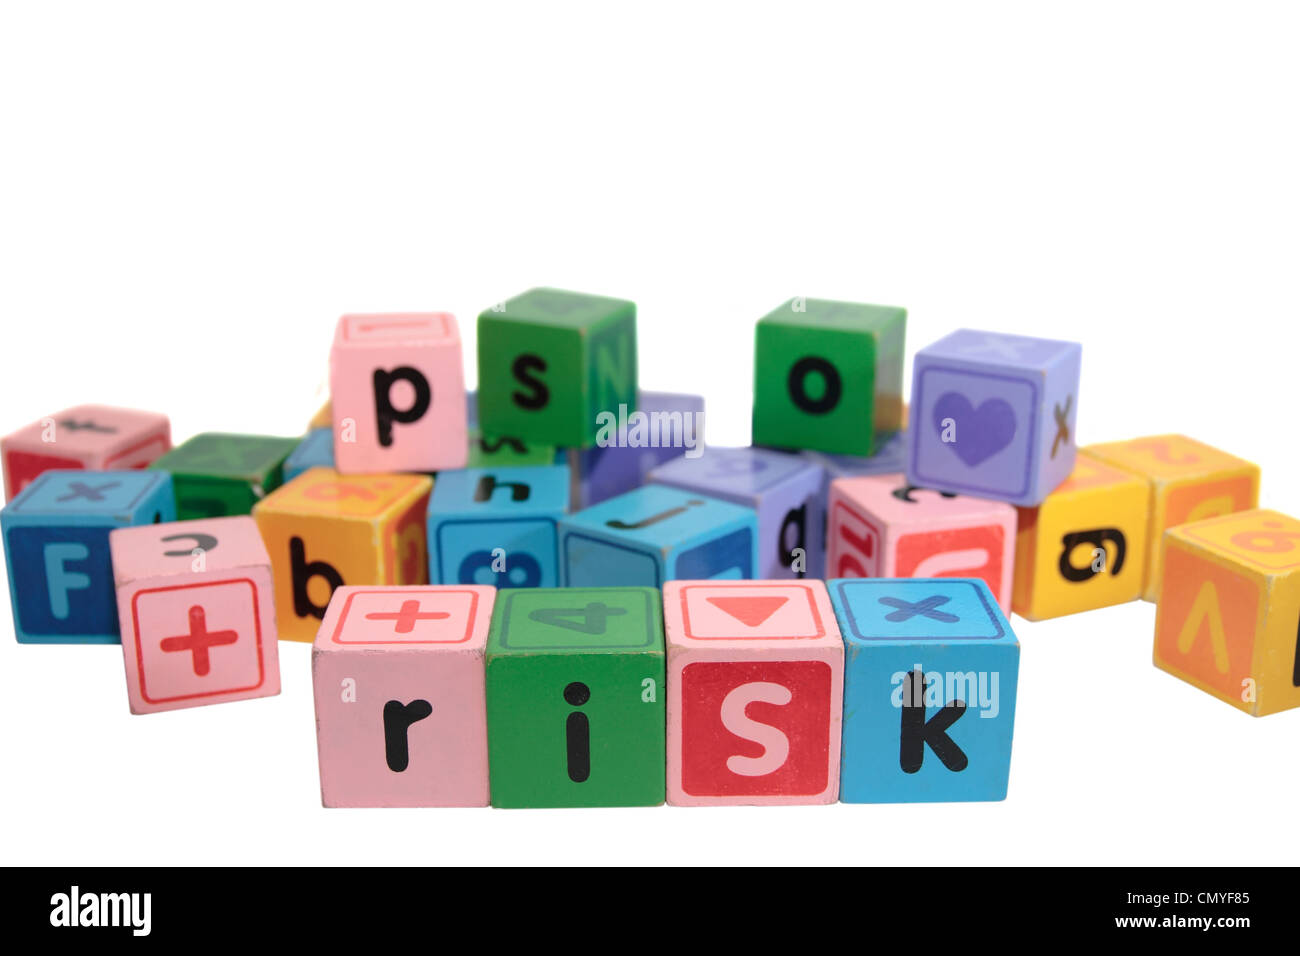 assorted childrens toy letter building blocks against a white background that spell risk - Stock Image